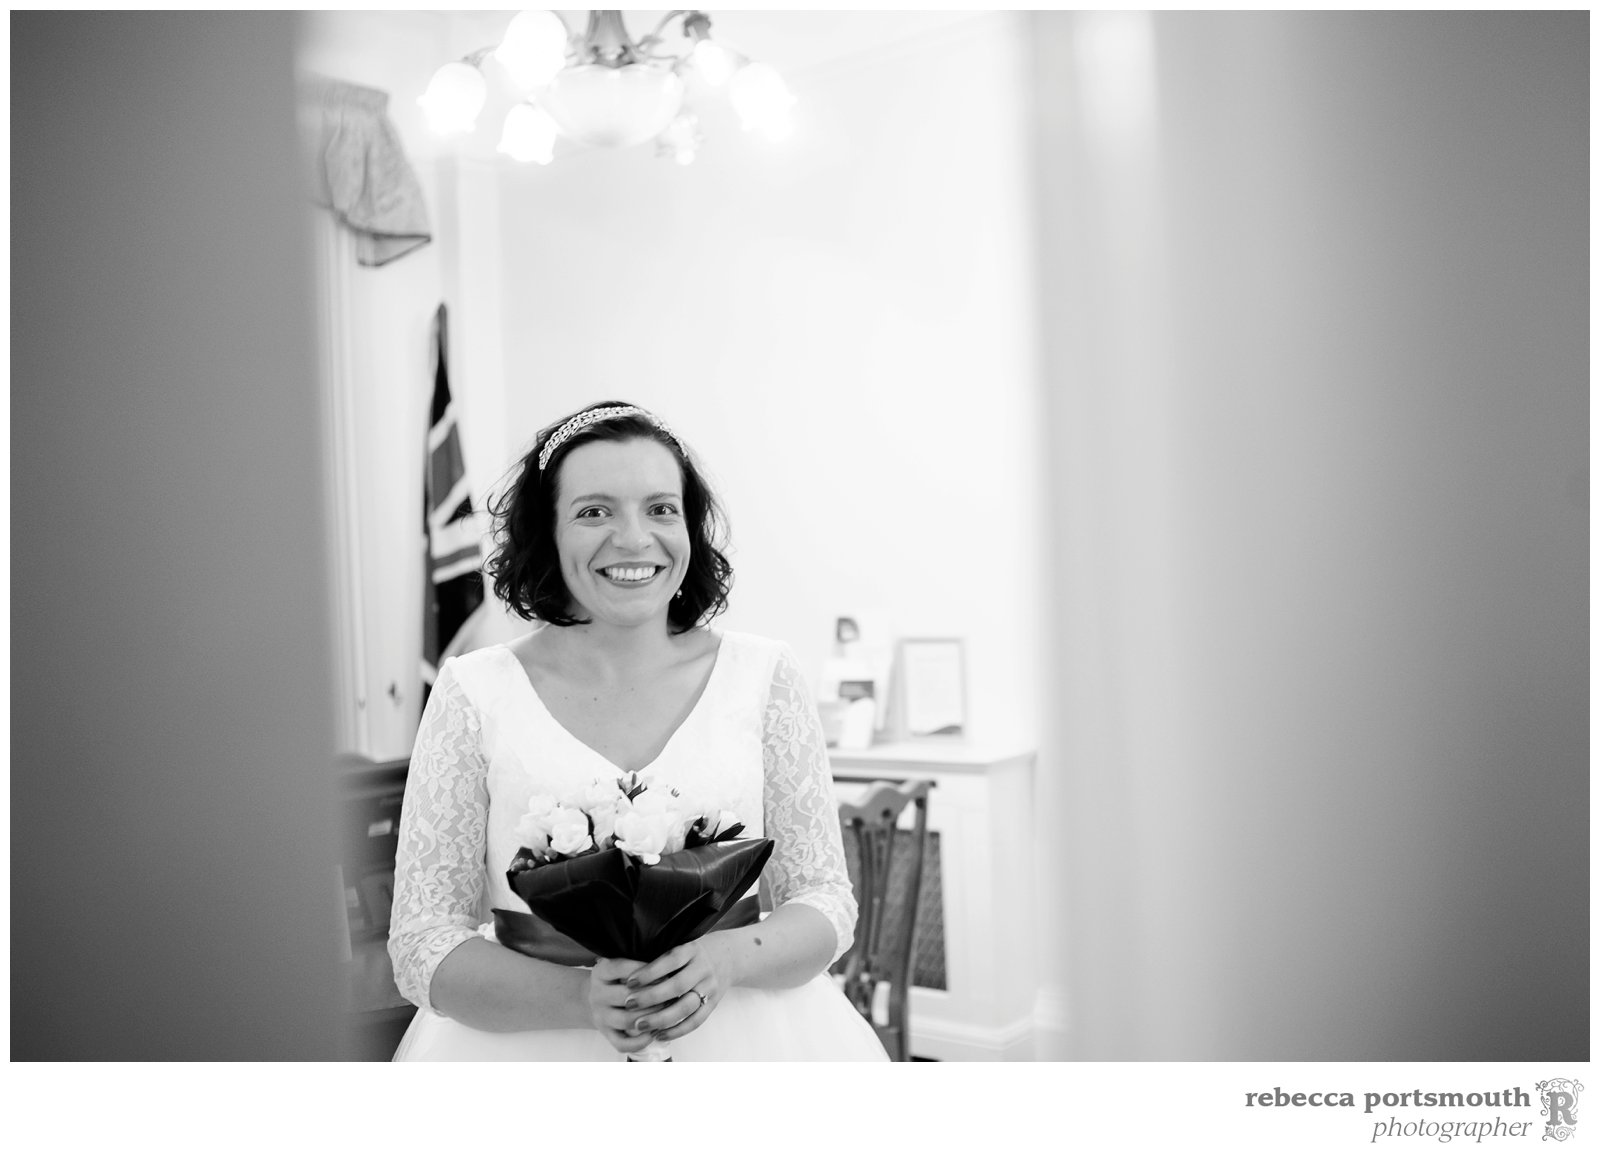 The bride with her bouquet - waiting to go into the ceremony room at Woolwich Town Hall in the Royal Borough of Greenwich.